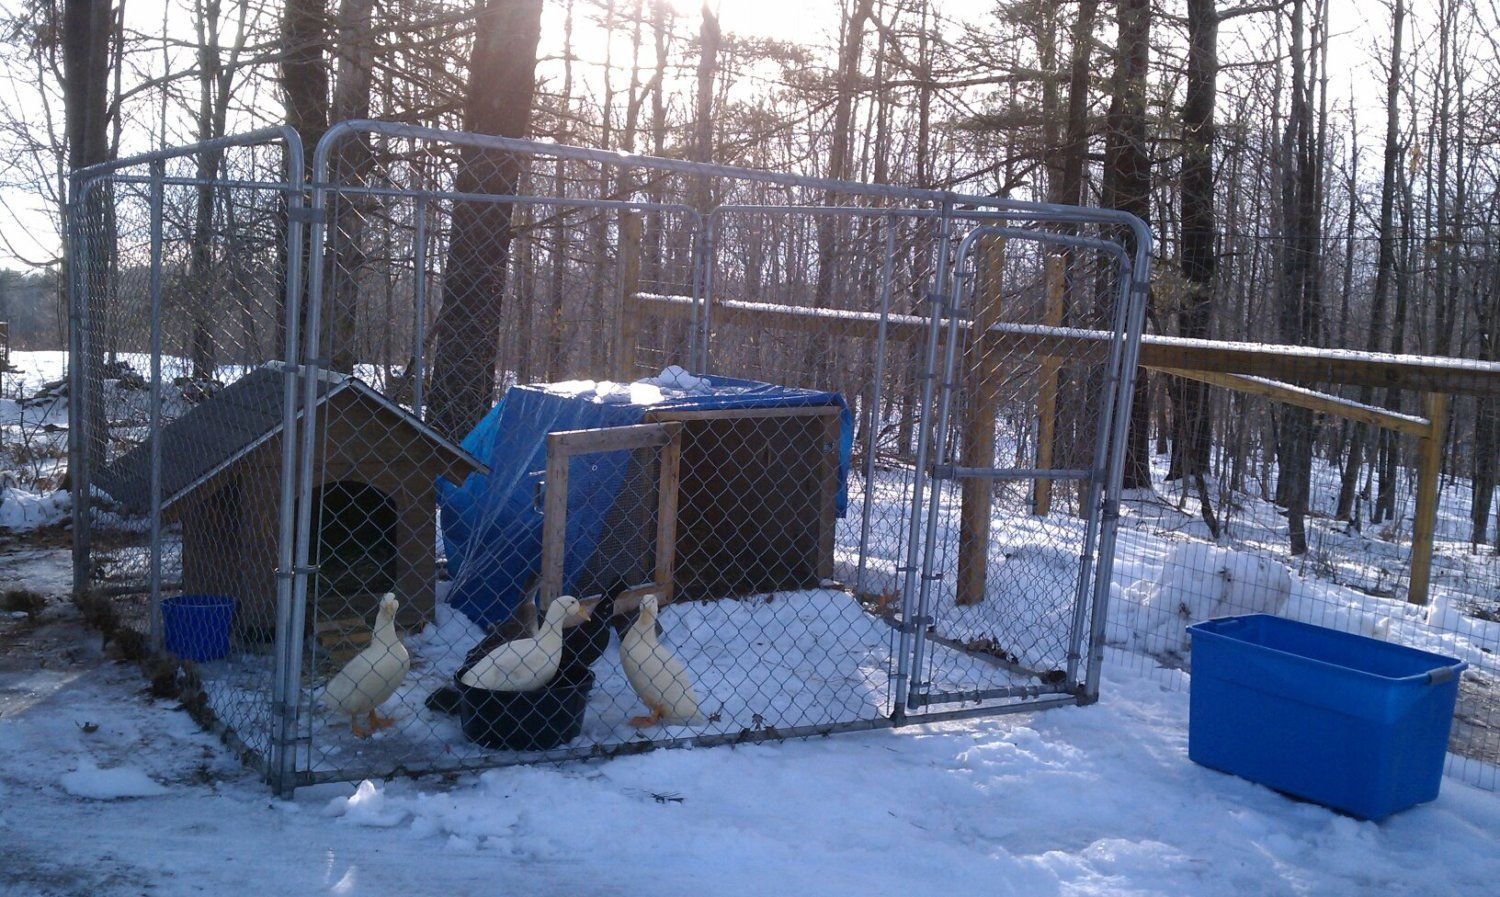 In a process of building a coop pen combo with all for Winter duck house